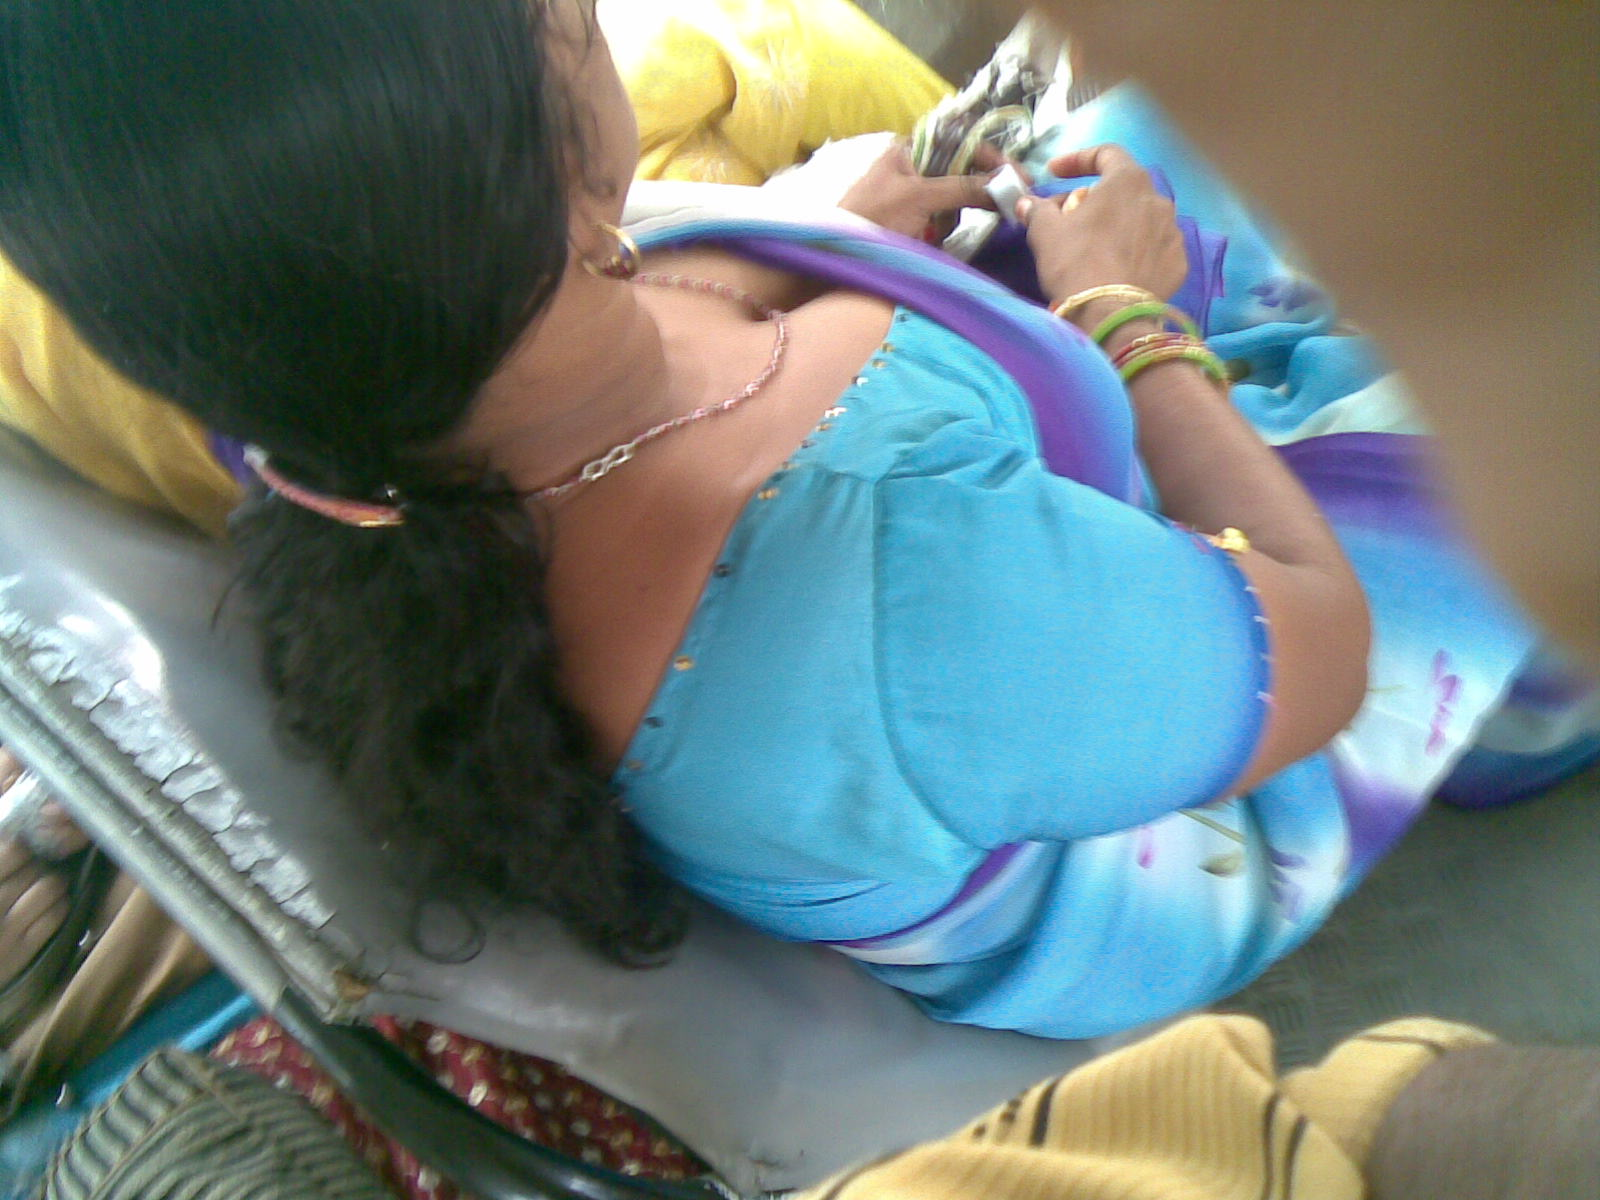 Telugu palleturi aunty back side photos girl taking